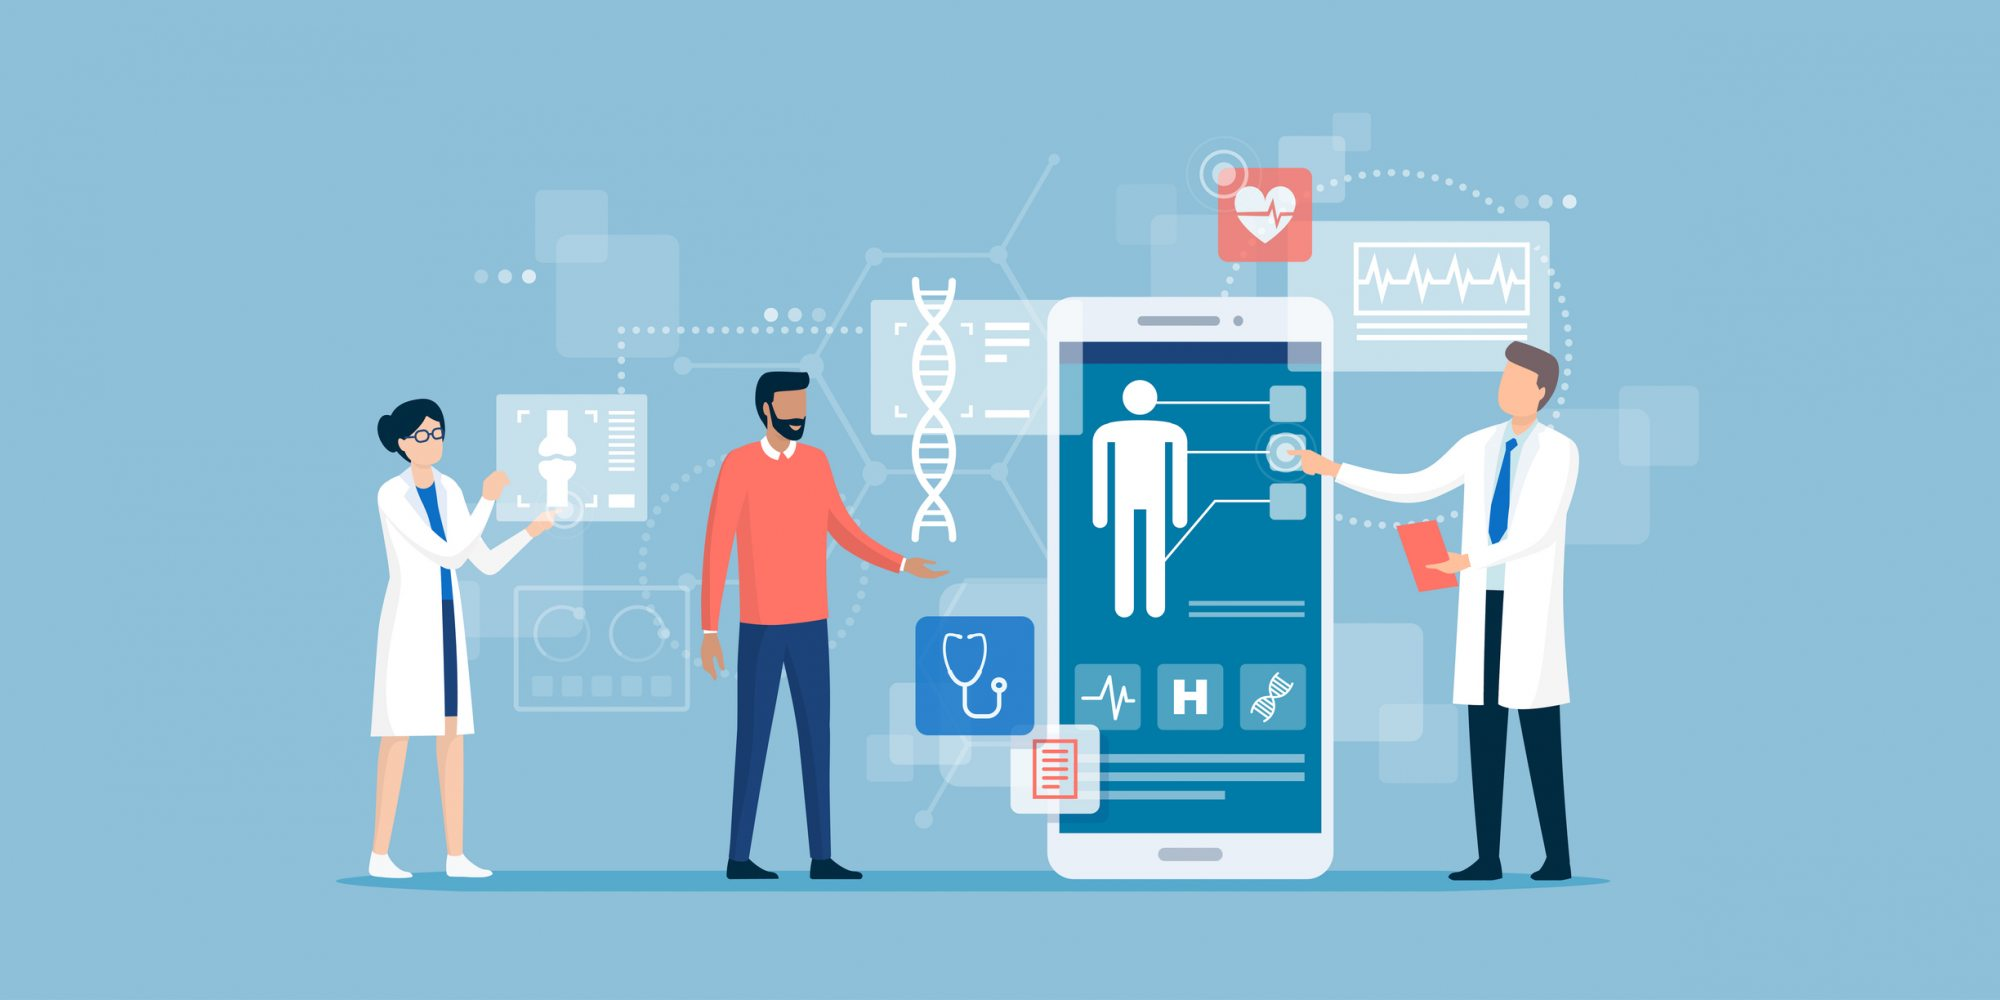 Hospitals are deploying virtual care apps in a matter of days, exposing them to more cyber attacks